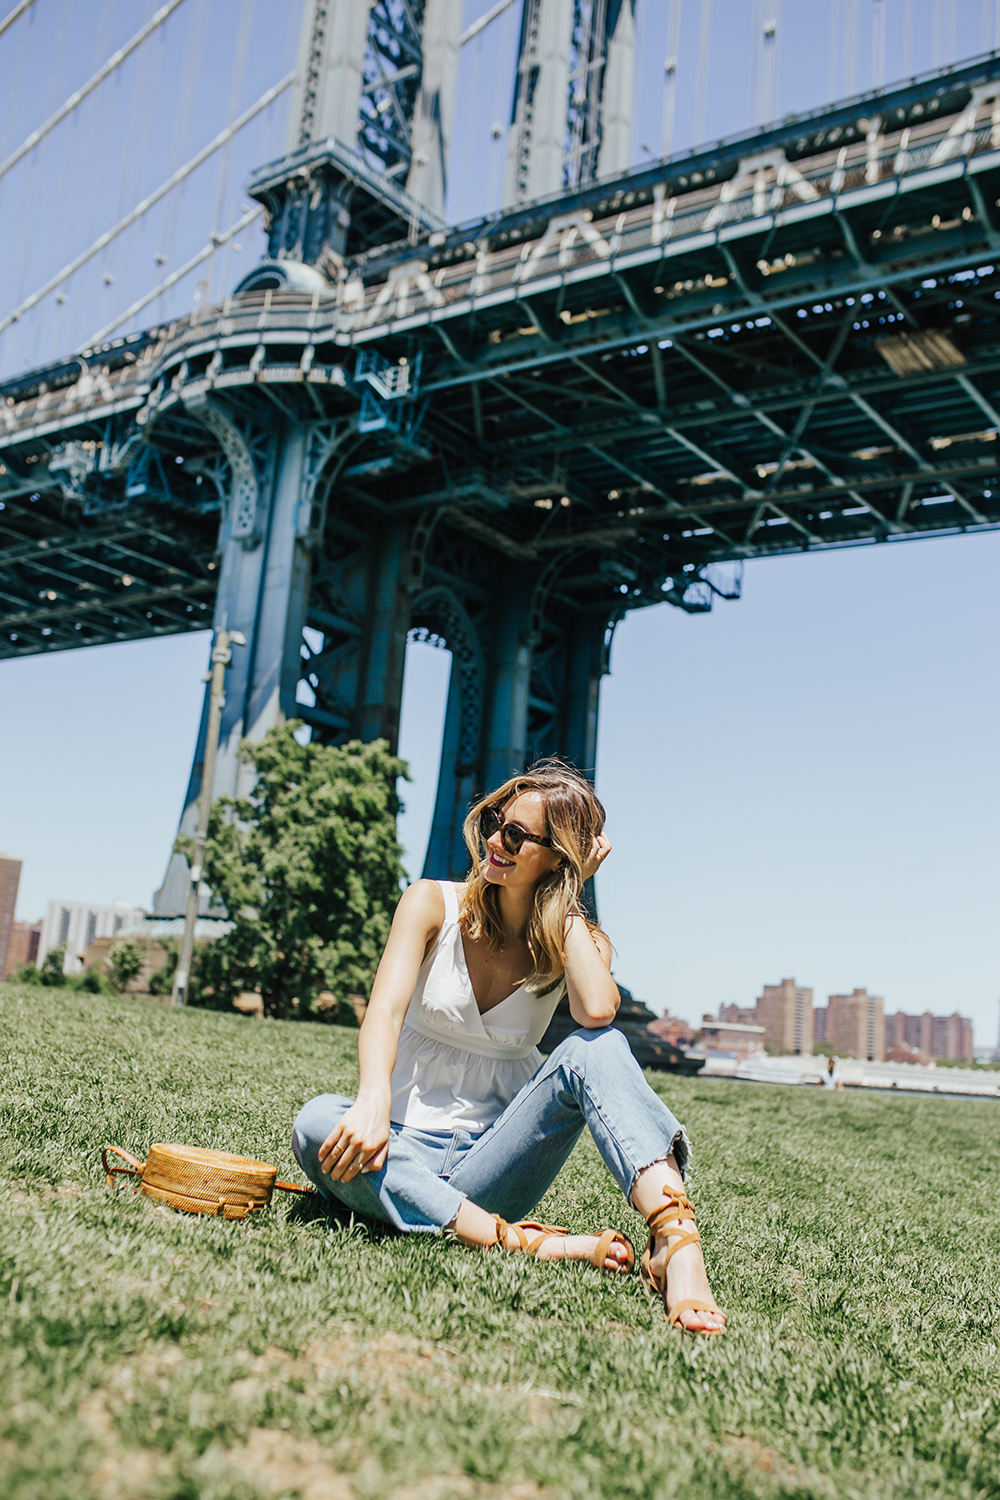 livvyland-blog-olivia-watson-urban-outfitters-open-back-bow-tie-top-mom-jeans-brooklyn-bridge-6